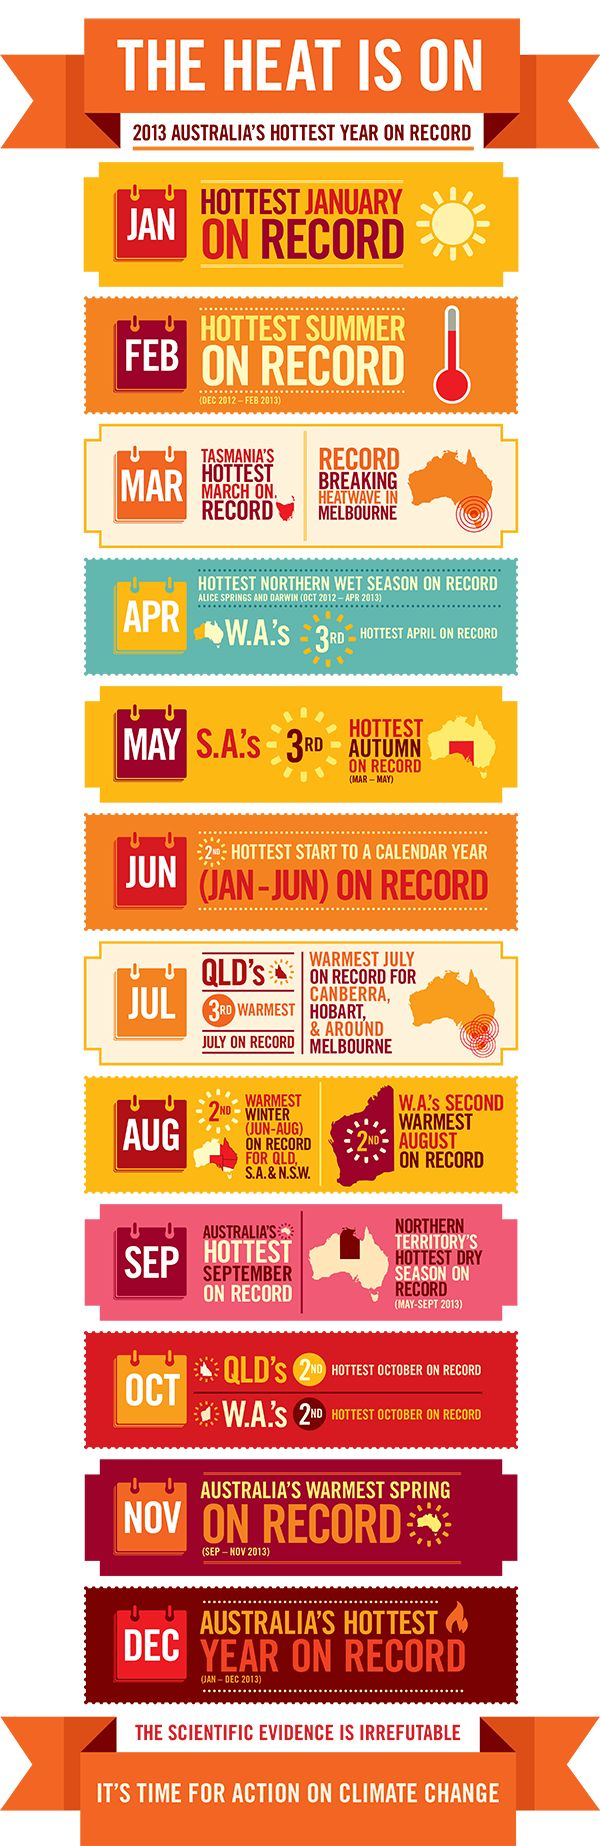 27 best xteaching science images on pinterest teaching ideas 2013 was australias hottest year on record heres the stats from the climate council fandeluxe Gallery